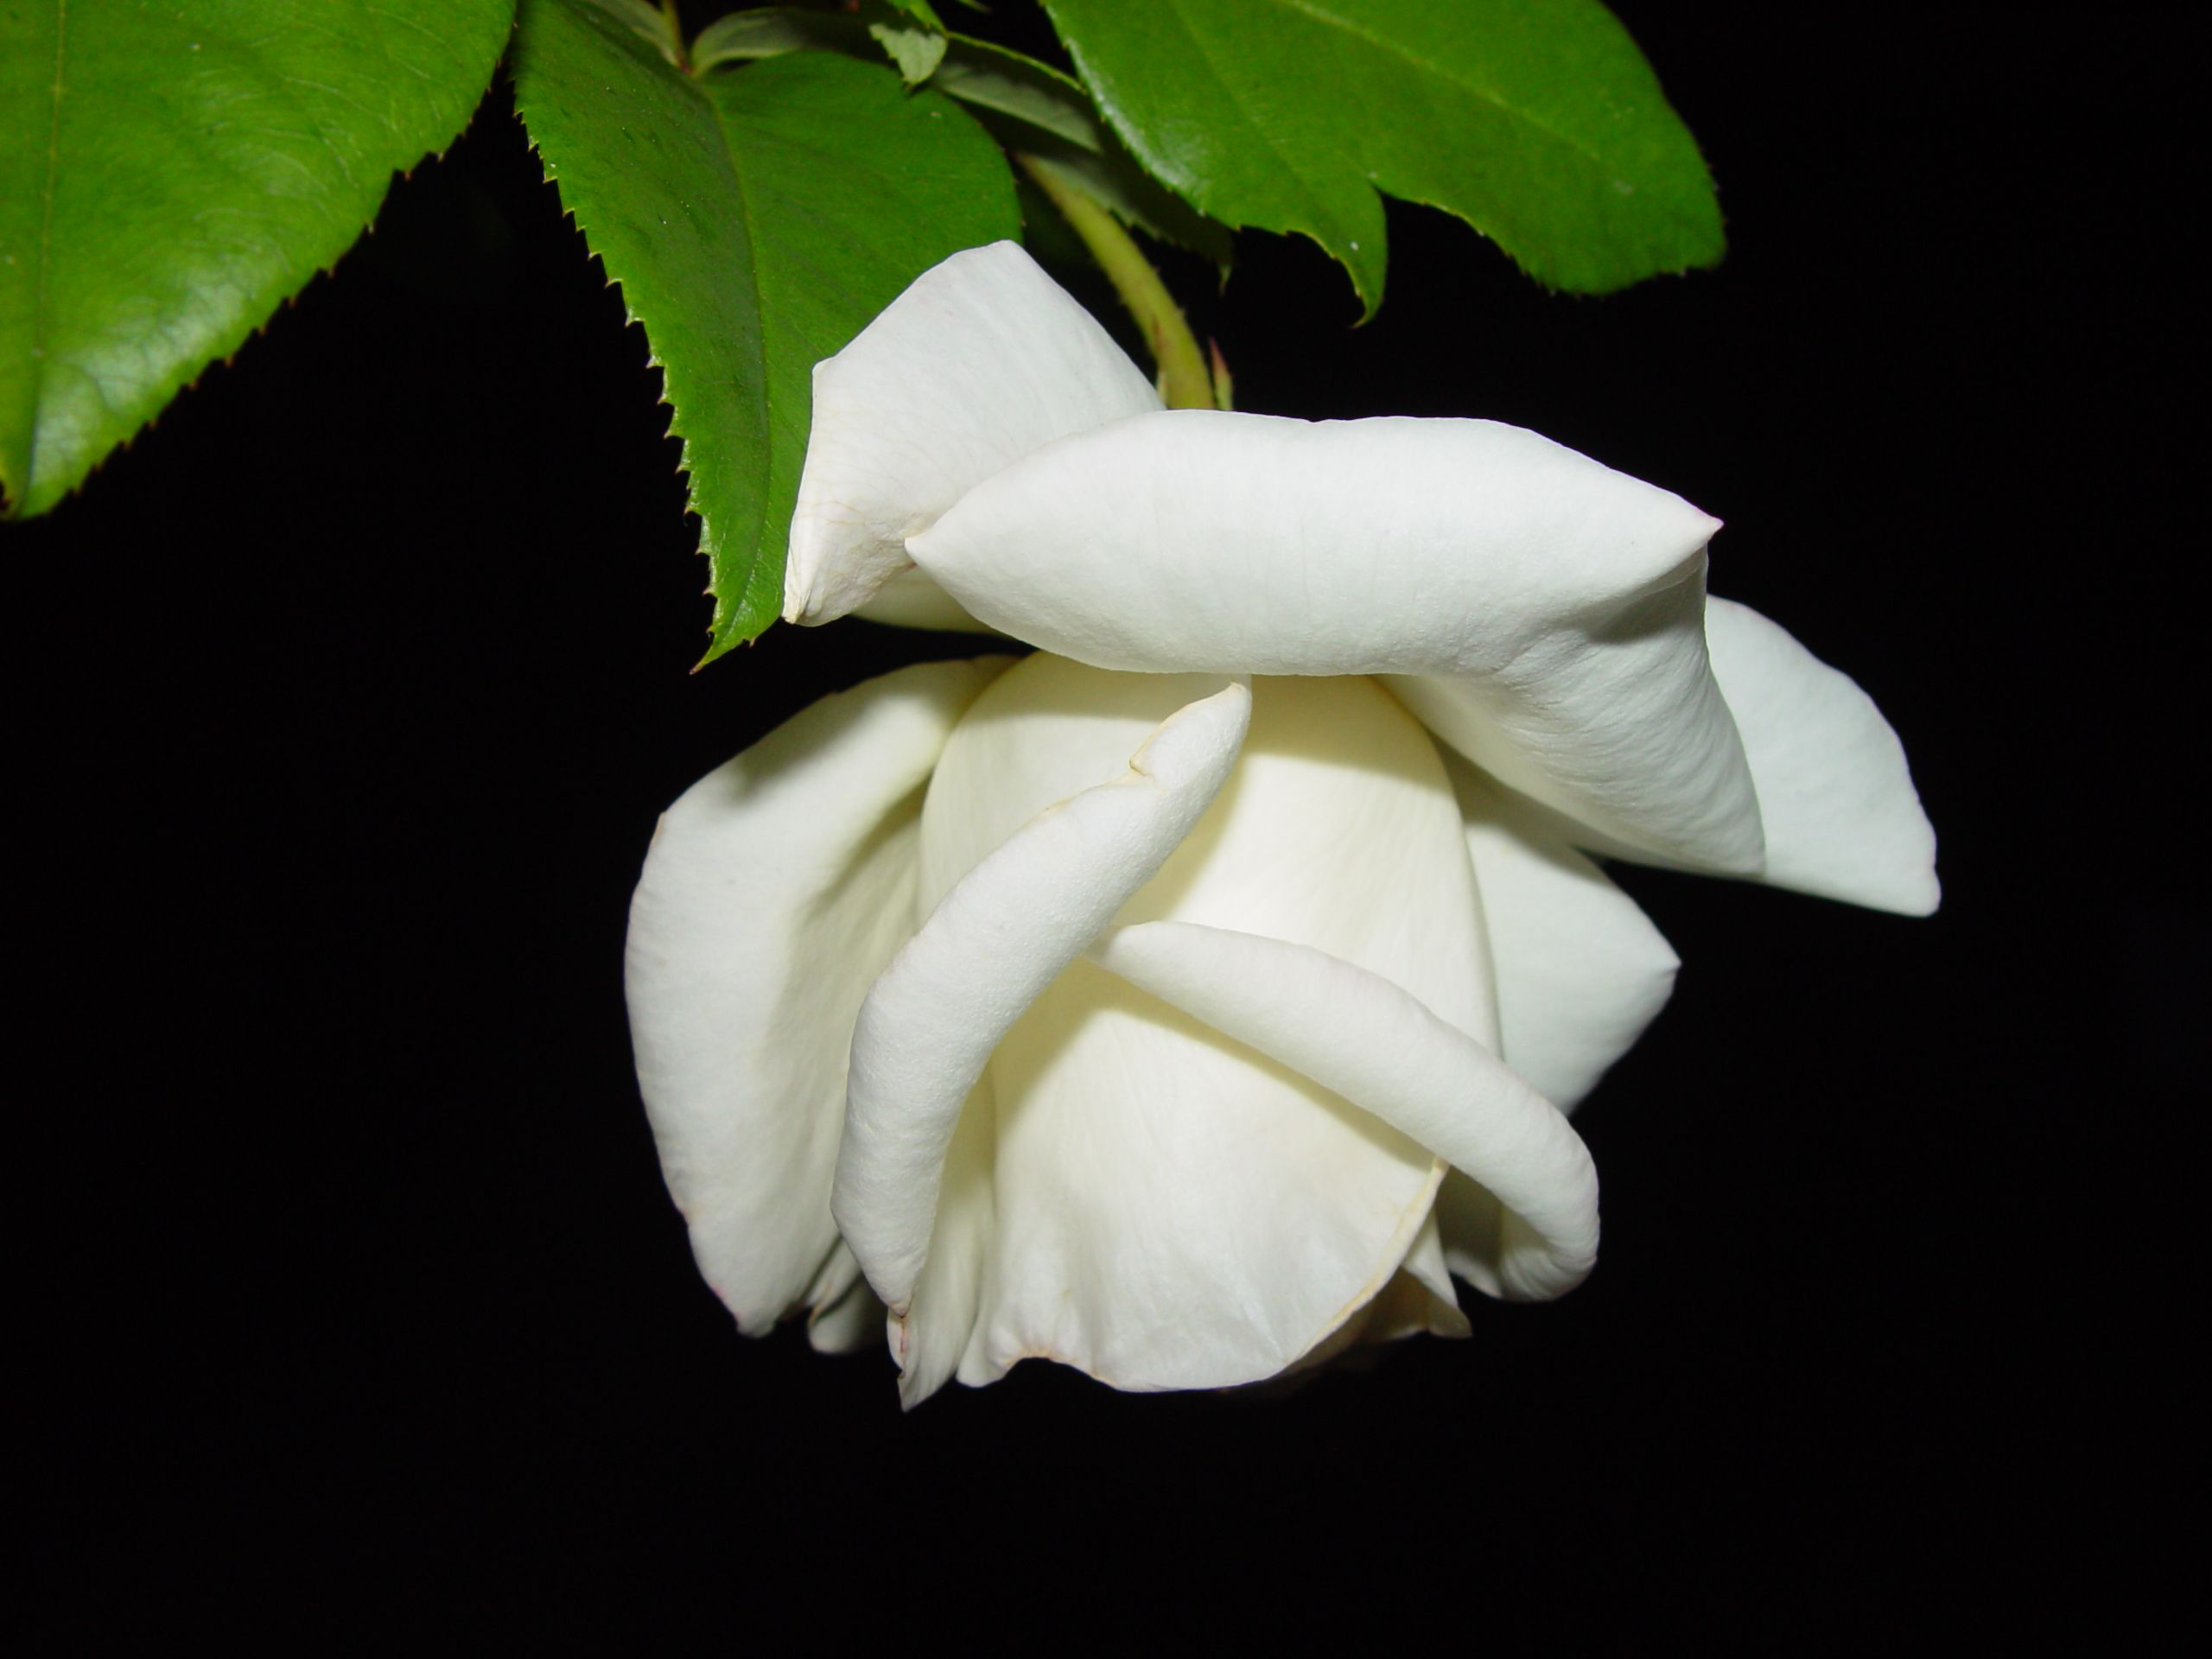 White Rose Photographed At Night I Tried Searching For One Like